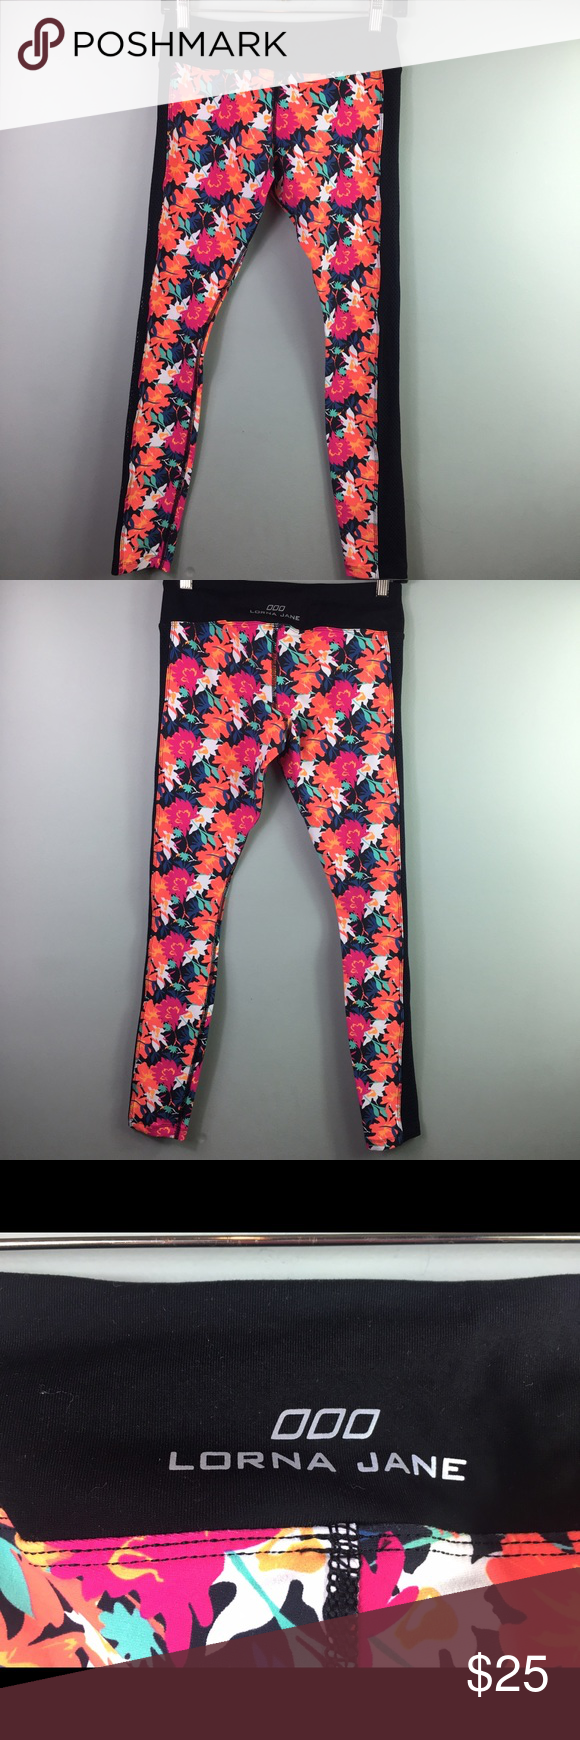 Women's Lorna Jane LJ Black Floral Leggings Size S Women's Lorna Jane LJ Black Floral Leggings Size Small. In Excellent Condition. No rips or stains. Like new! Lorna Jane Pants Leggings